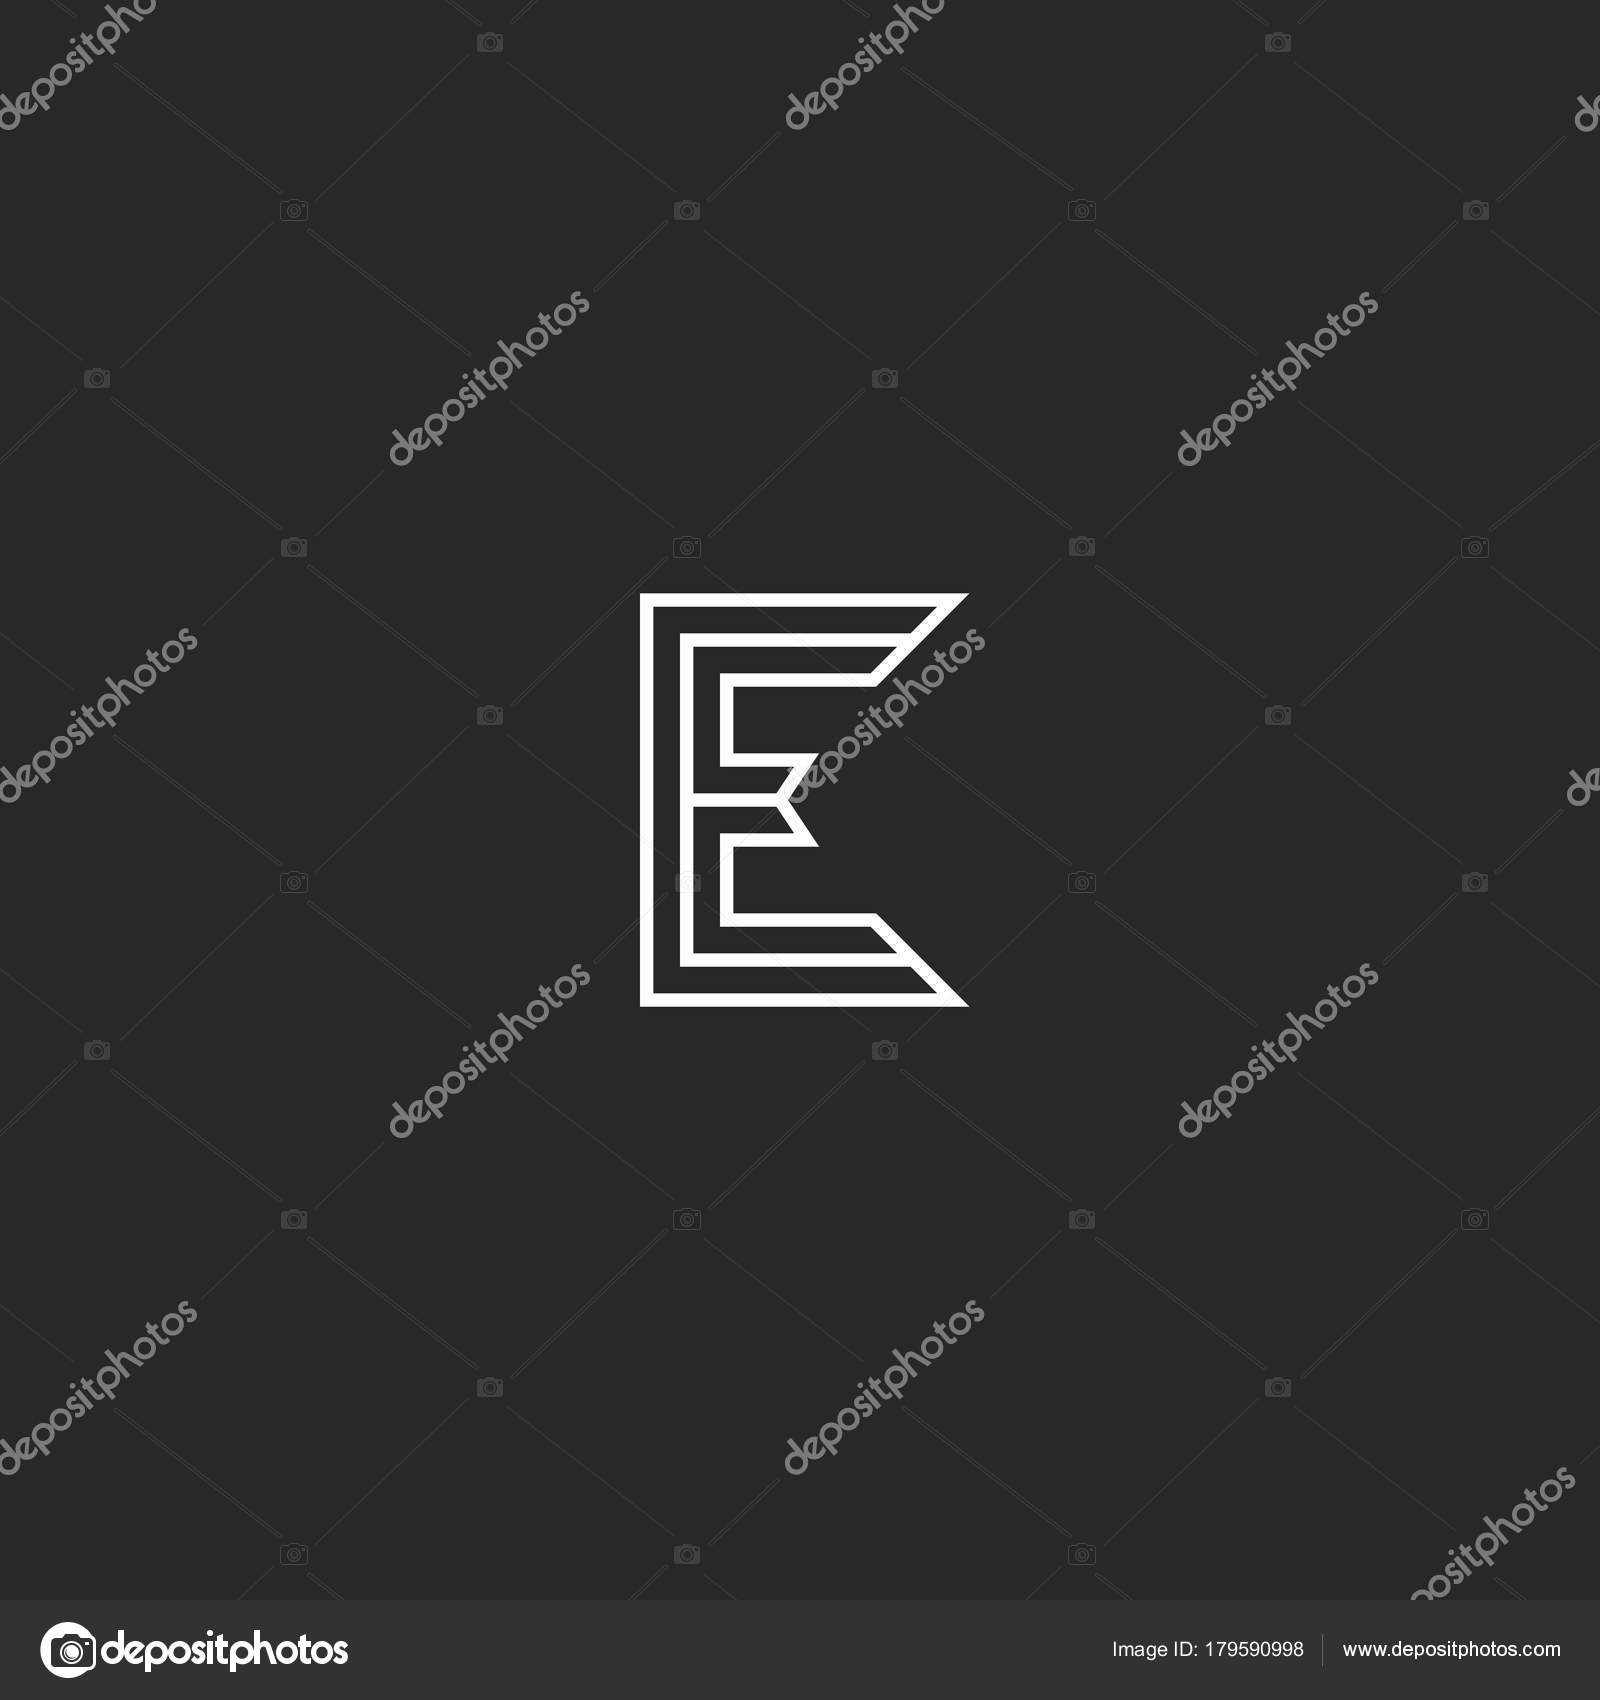 letter e logo elegant monogram thin lines medieval minimal style wedding or business card capital